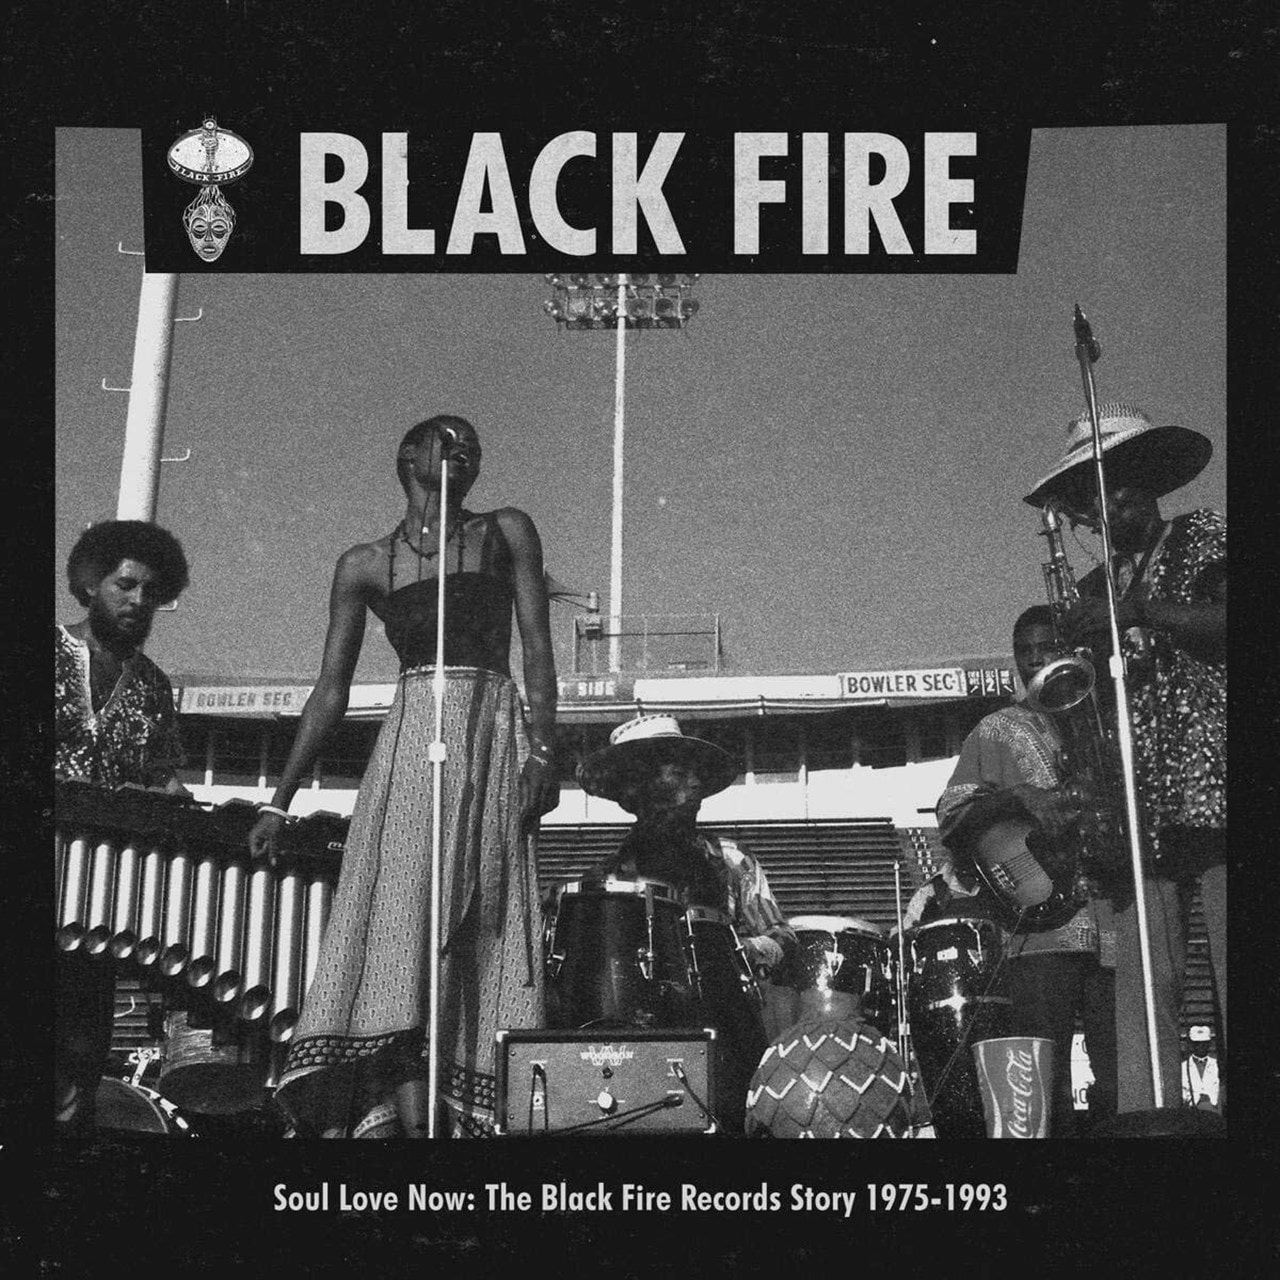 Soul Love Now: The Black Fire Records Story 1975-1993 - 1